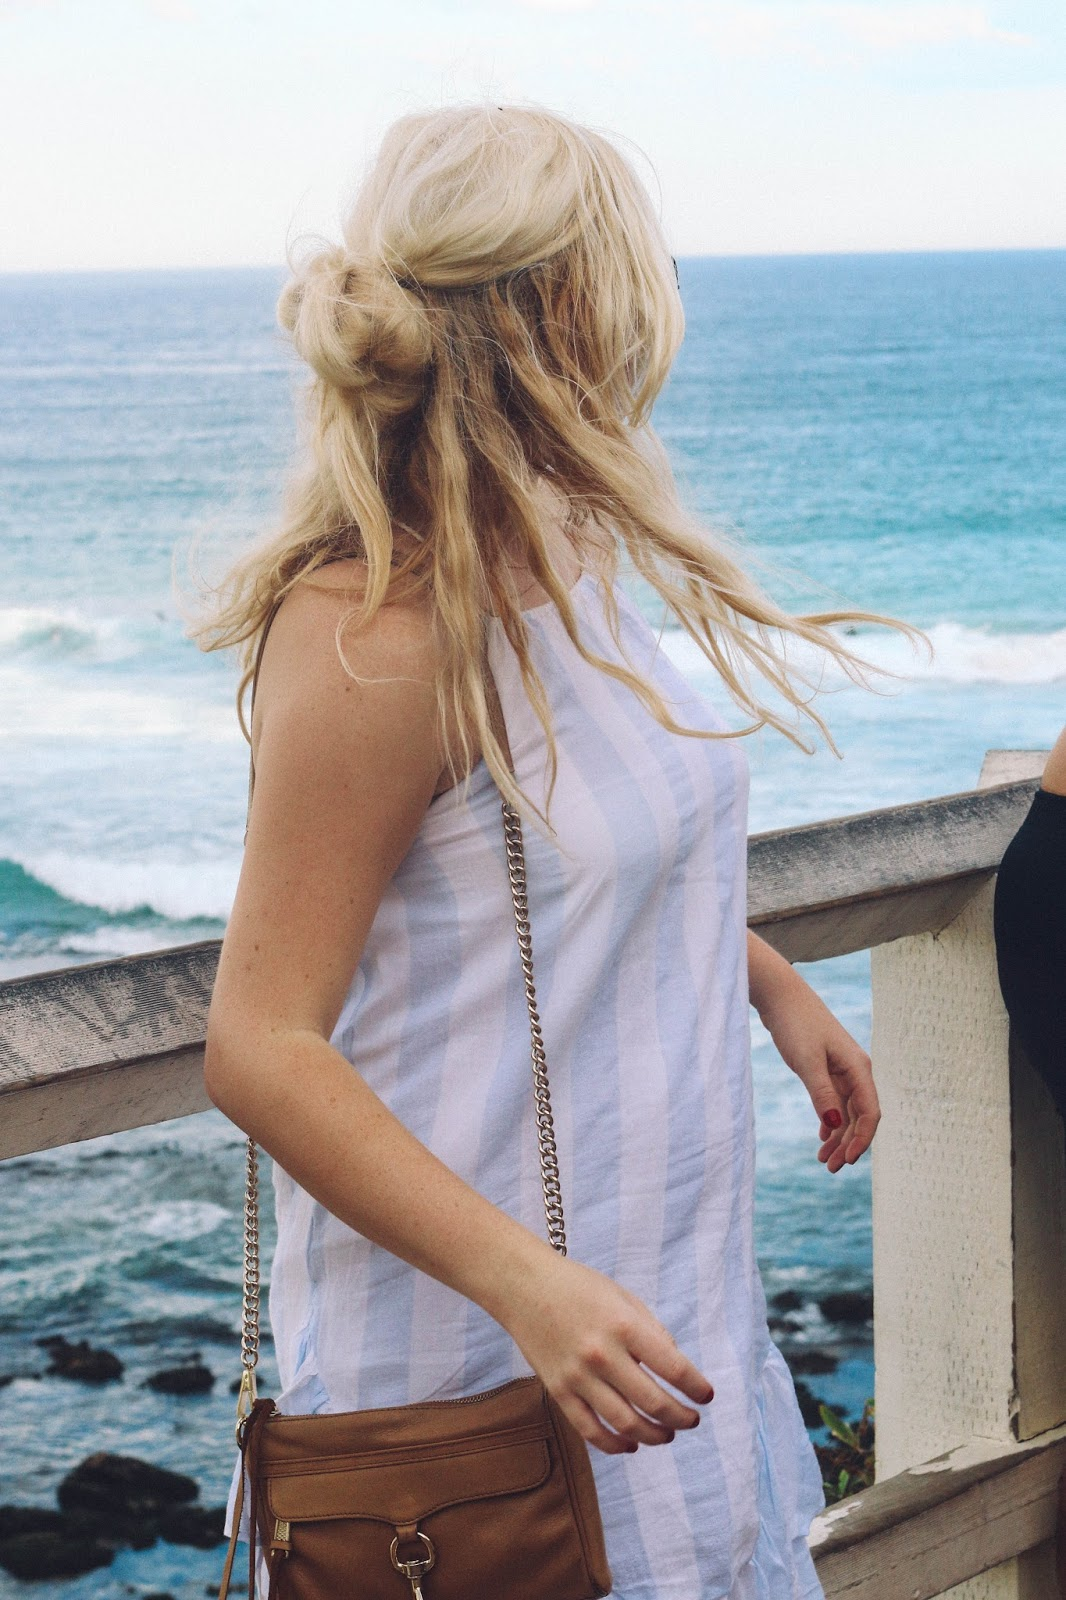 Fashion Blogger (Global Fashion Gal) wearing a blue striped ruffle dress at Bondi Beach in Sydney, Australia.